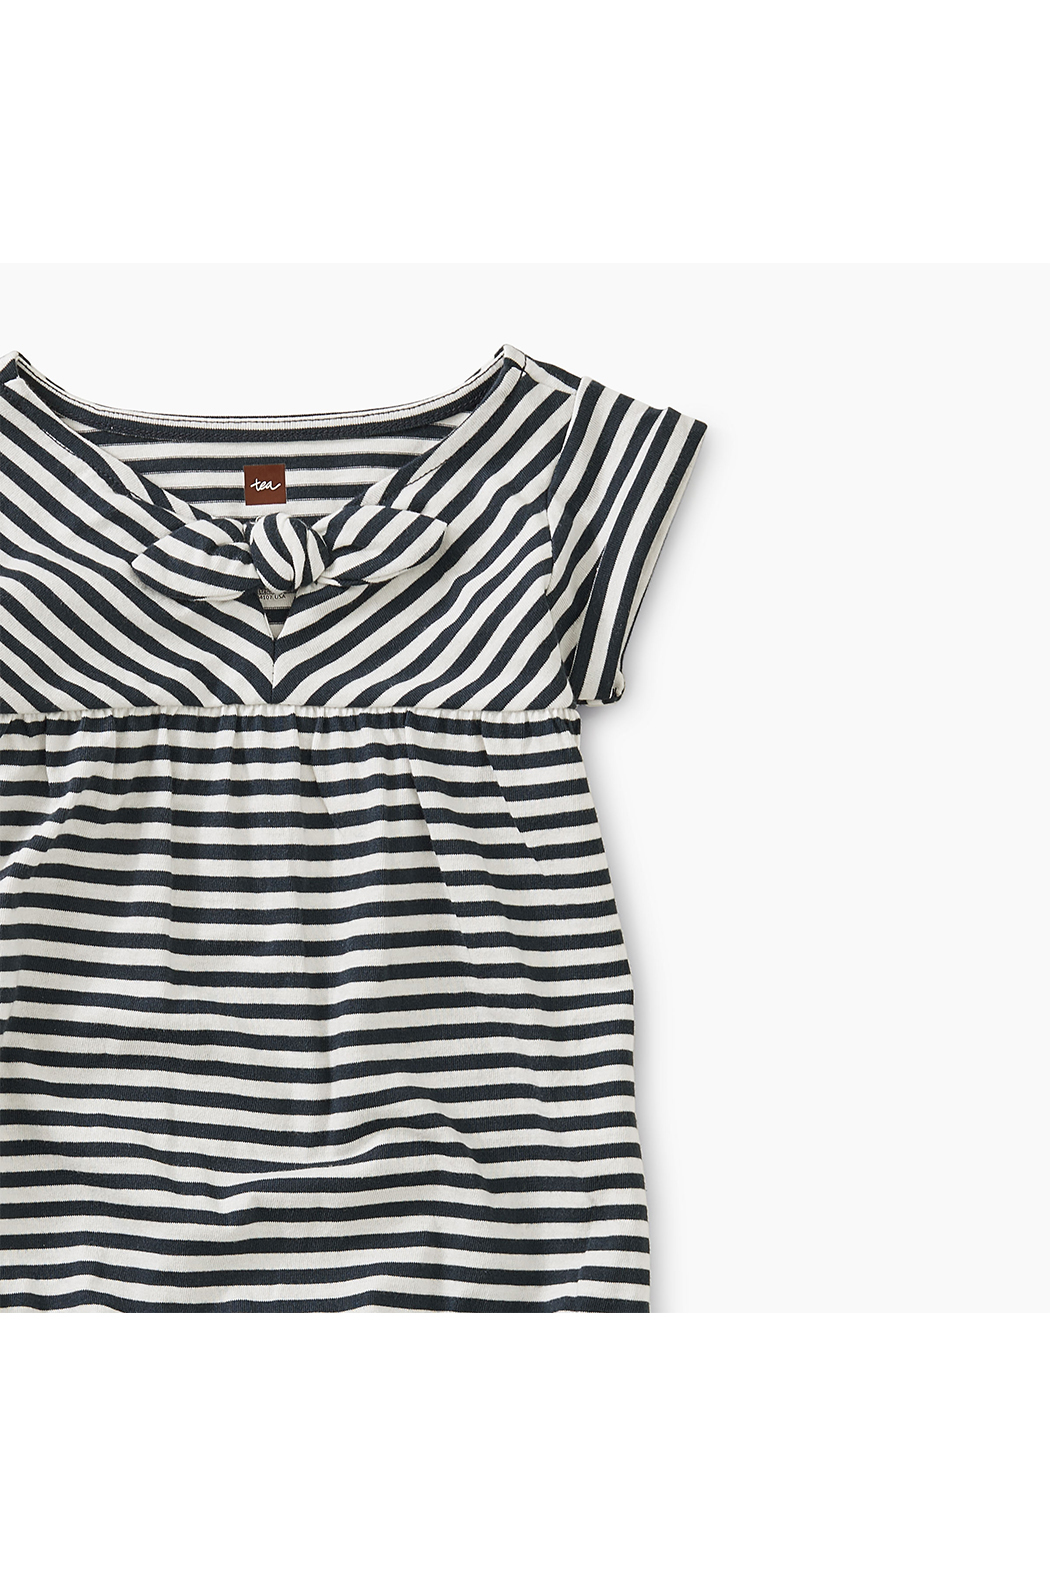 Tea Collection Striped Tie Romper - Front Full Image